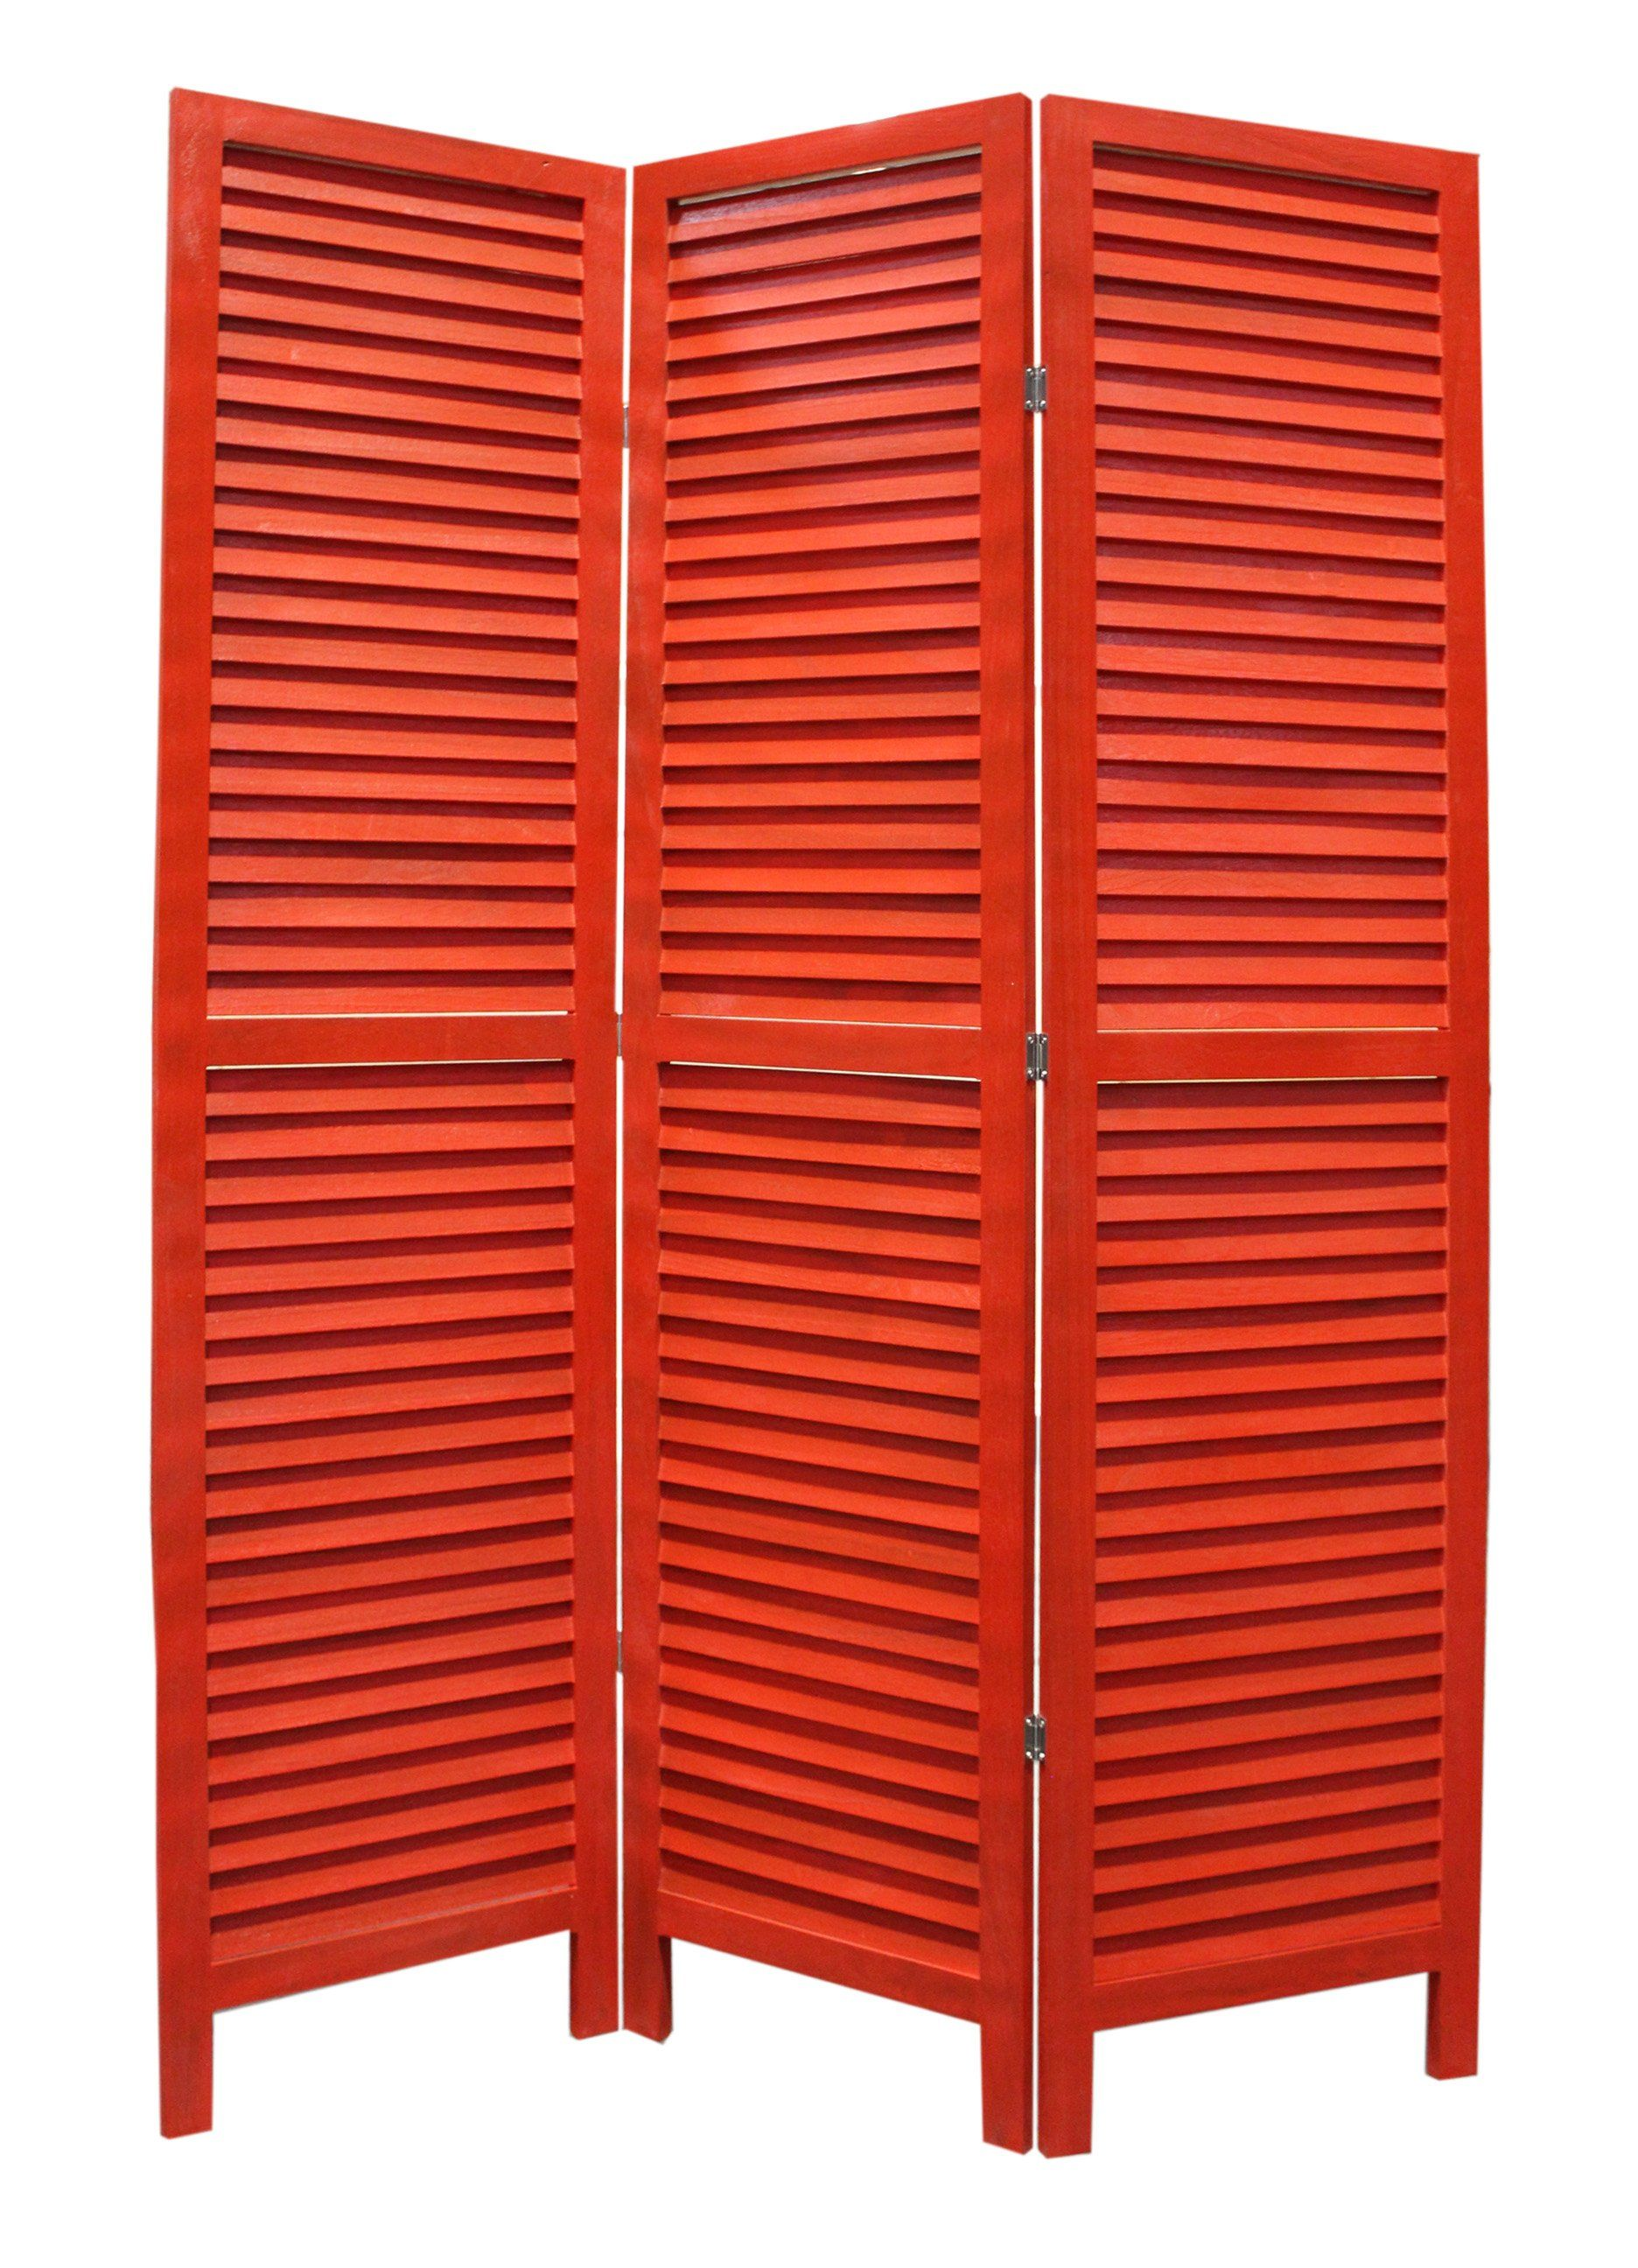 Panel Room Divider, Red Shutters, Wooden